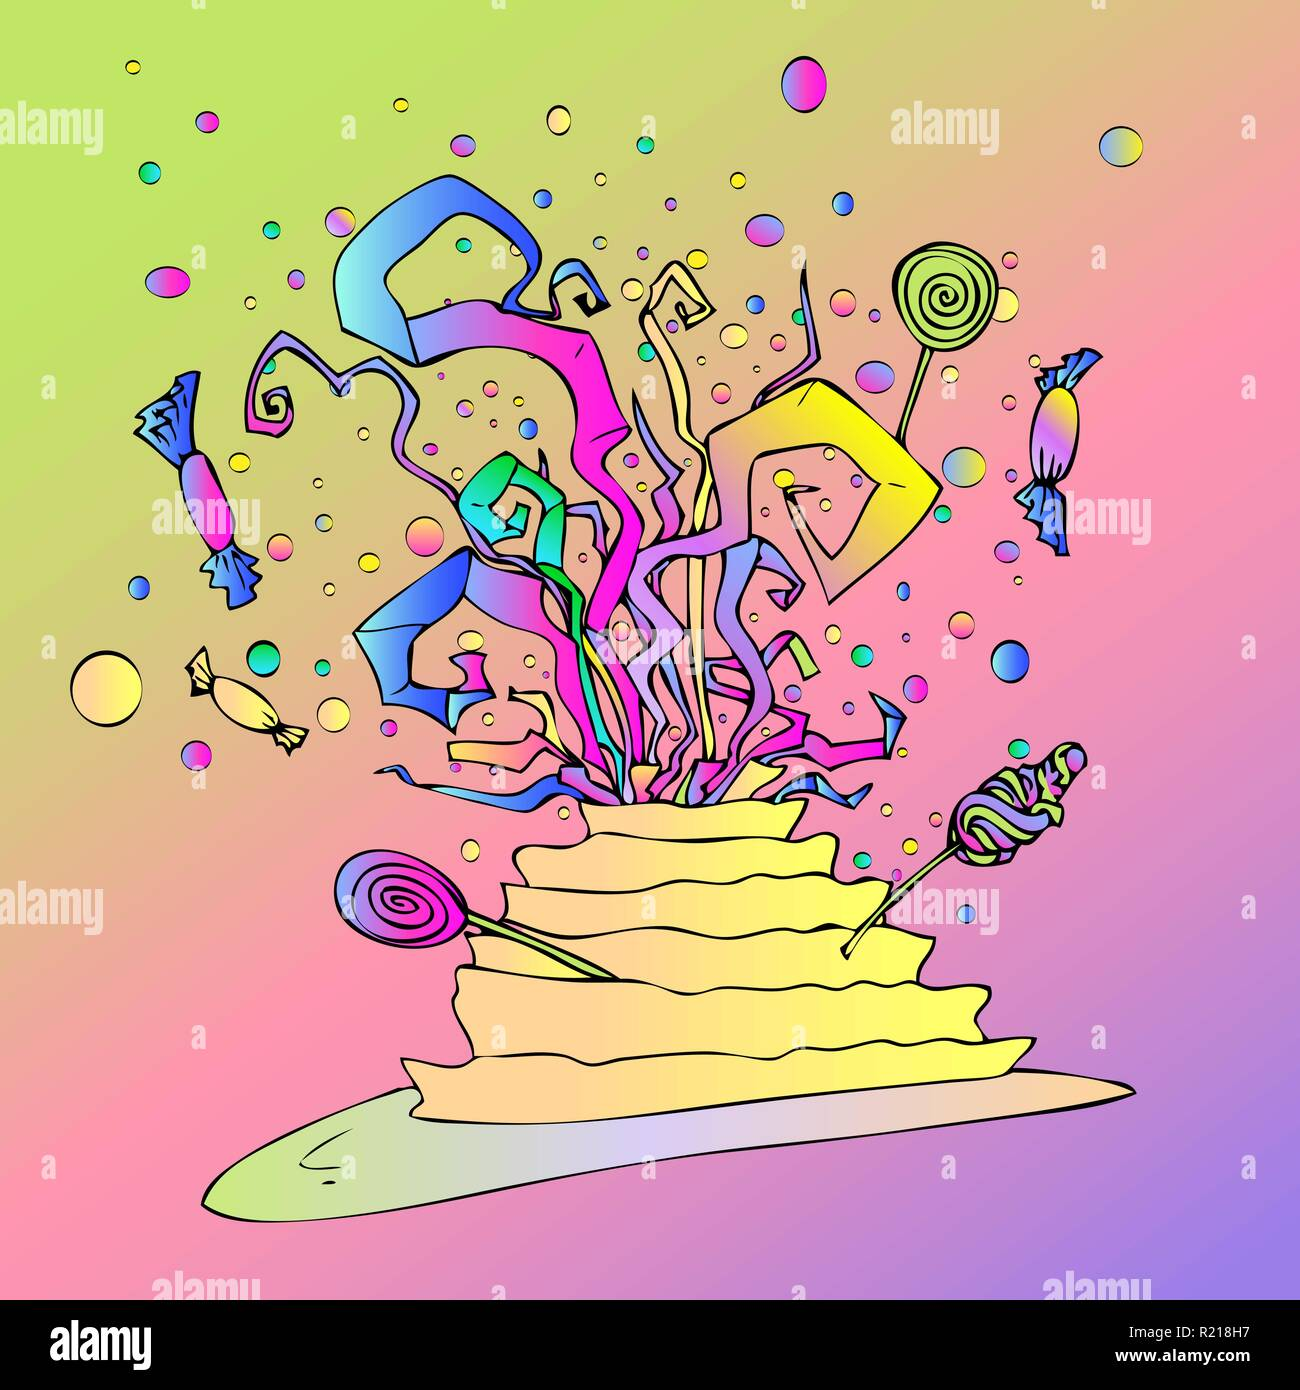 Magnificent Birthday Cake With Sweets Lollipops And Confetti In Pink Yellow Funny Birthday Cards Online Ioscodamsfinfo